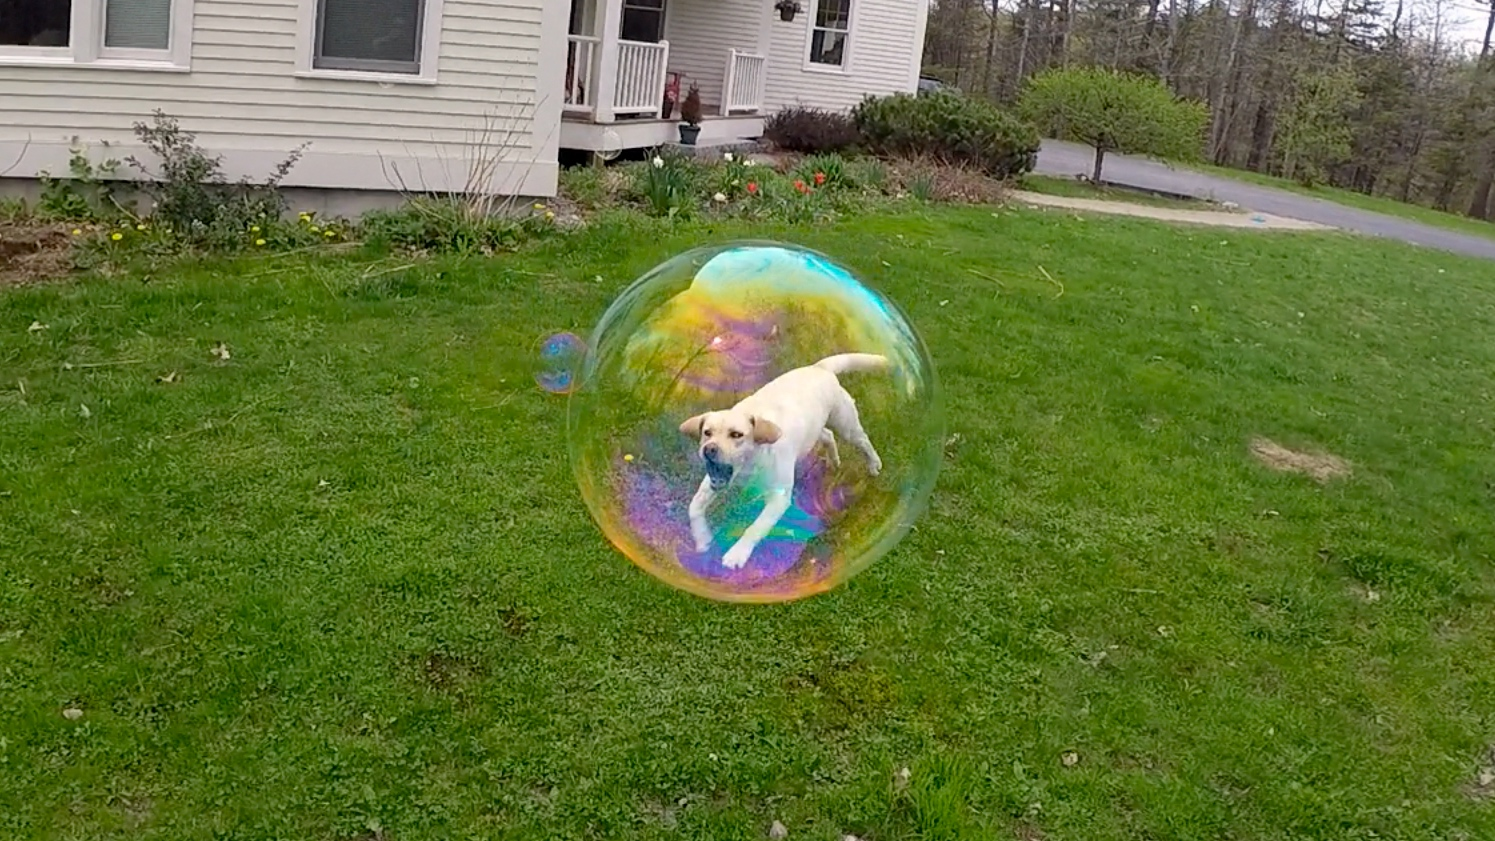 This freeze-frame trapped my dog in a bubble.